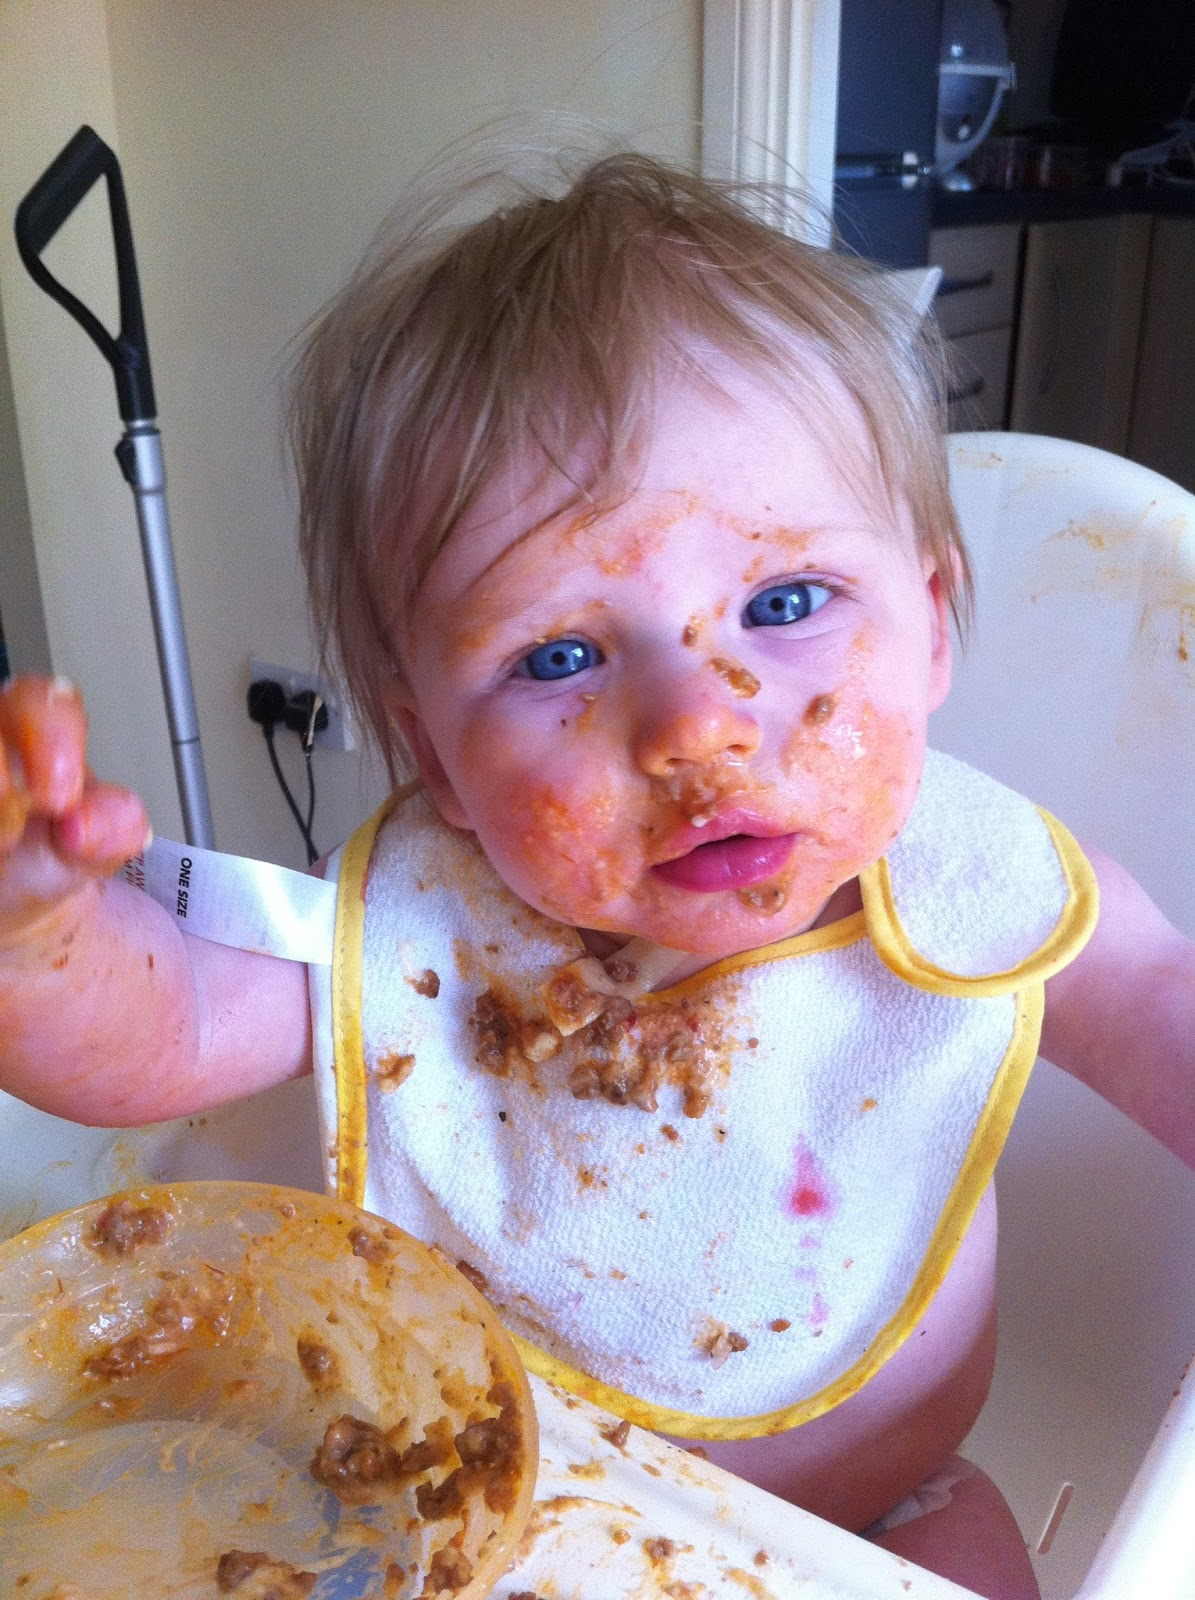 A baby covered in bolognase sauce reaches out a messy hand